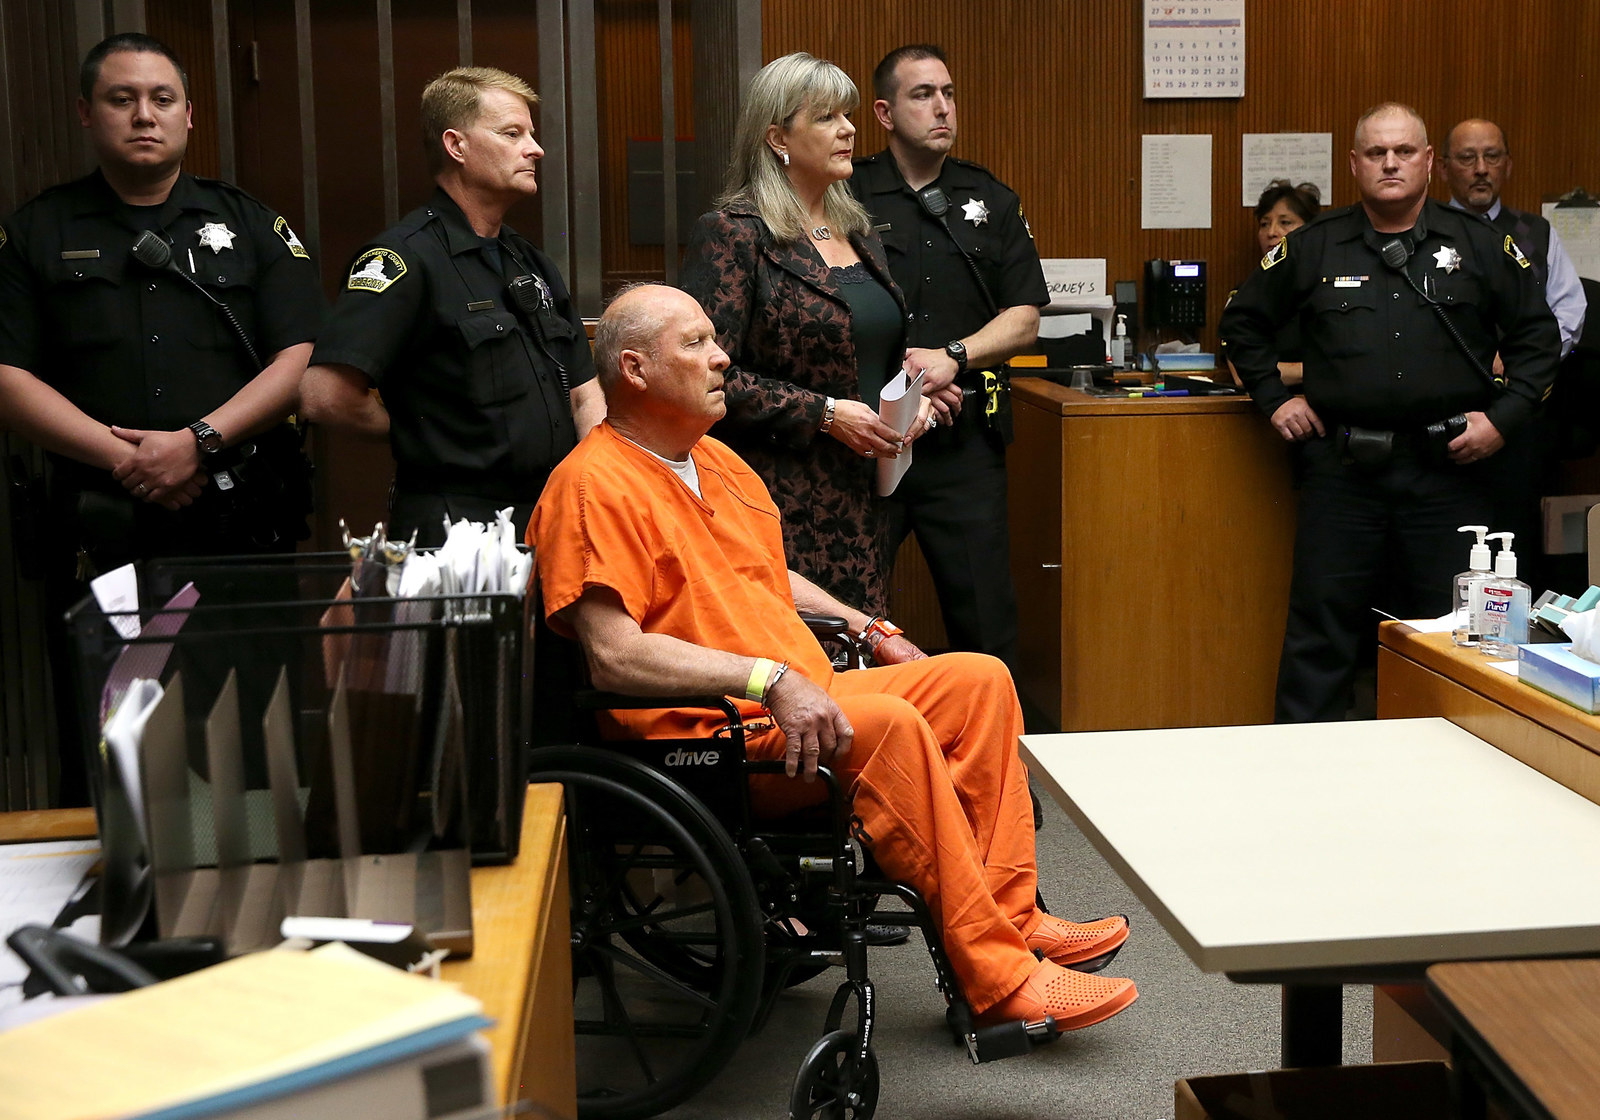 Joseph James DeAngelo, the suspected Golden State Killer, appears in court for his arraignment on April 27.